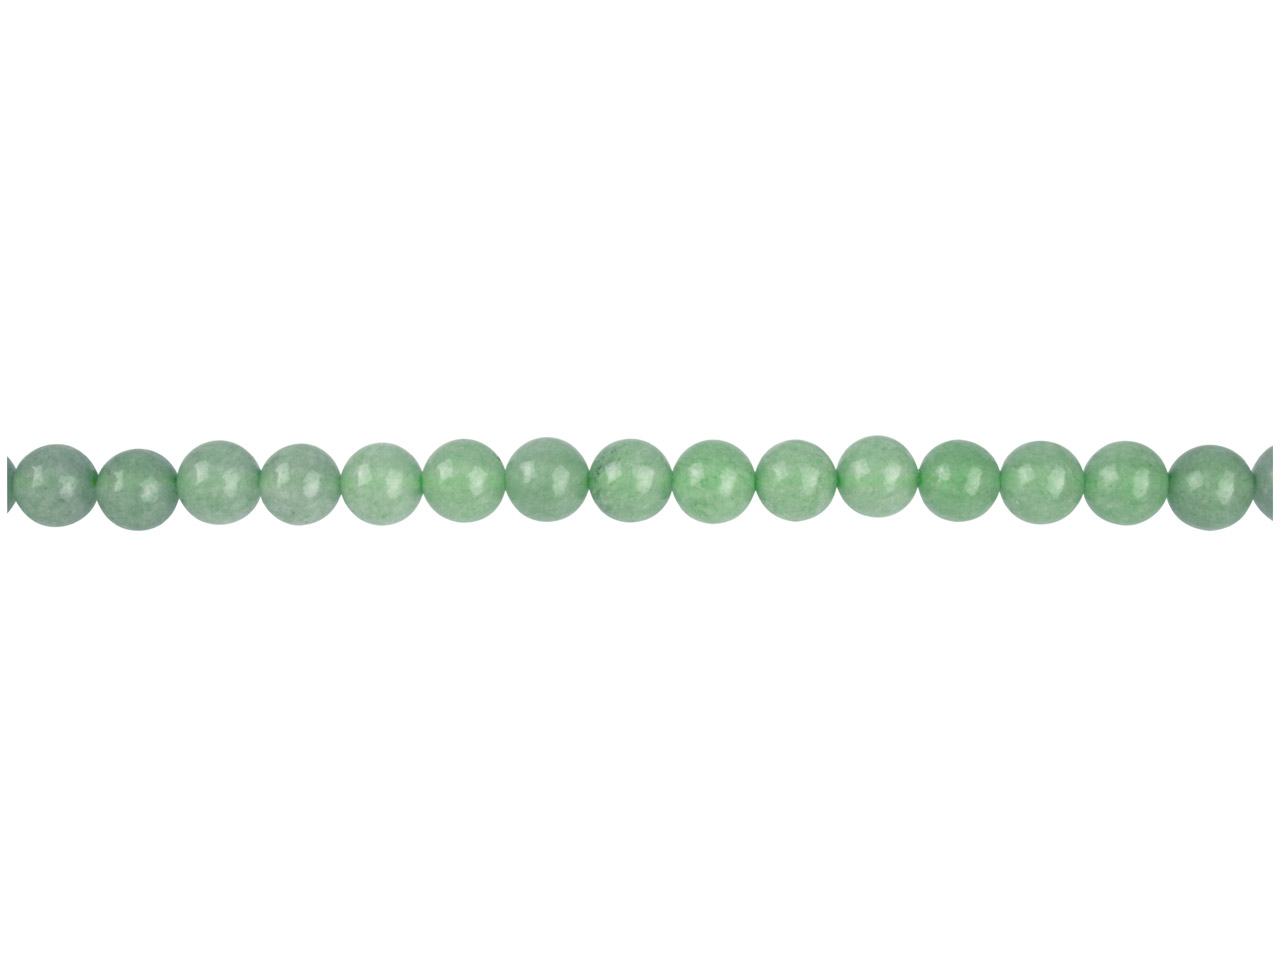 Green Aventurine Semi Precious     Round Beads 6mm, 16